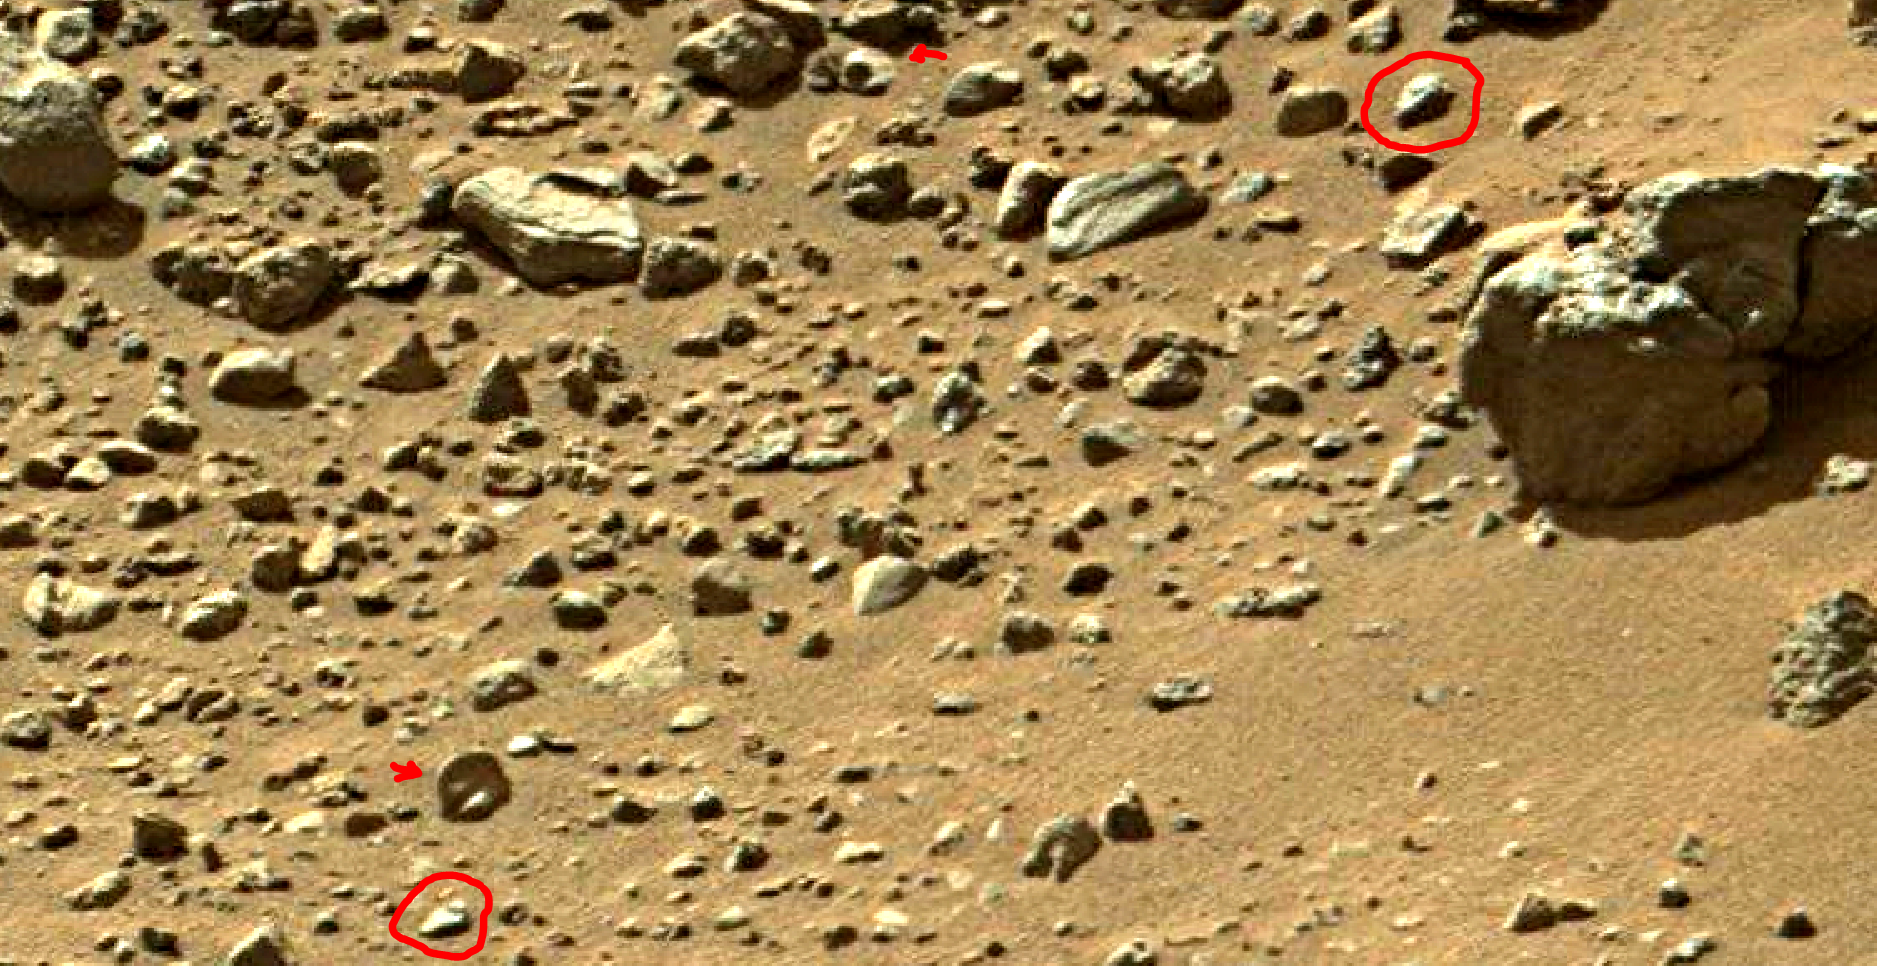 mars sol 1405 anomaly artifacts 8a was life on mars